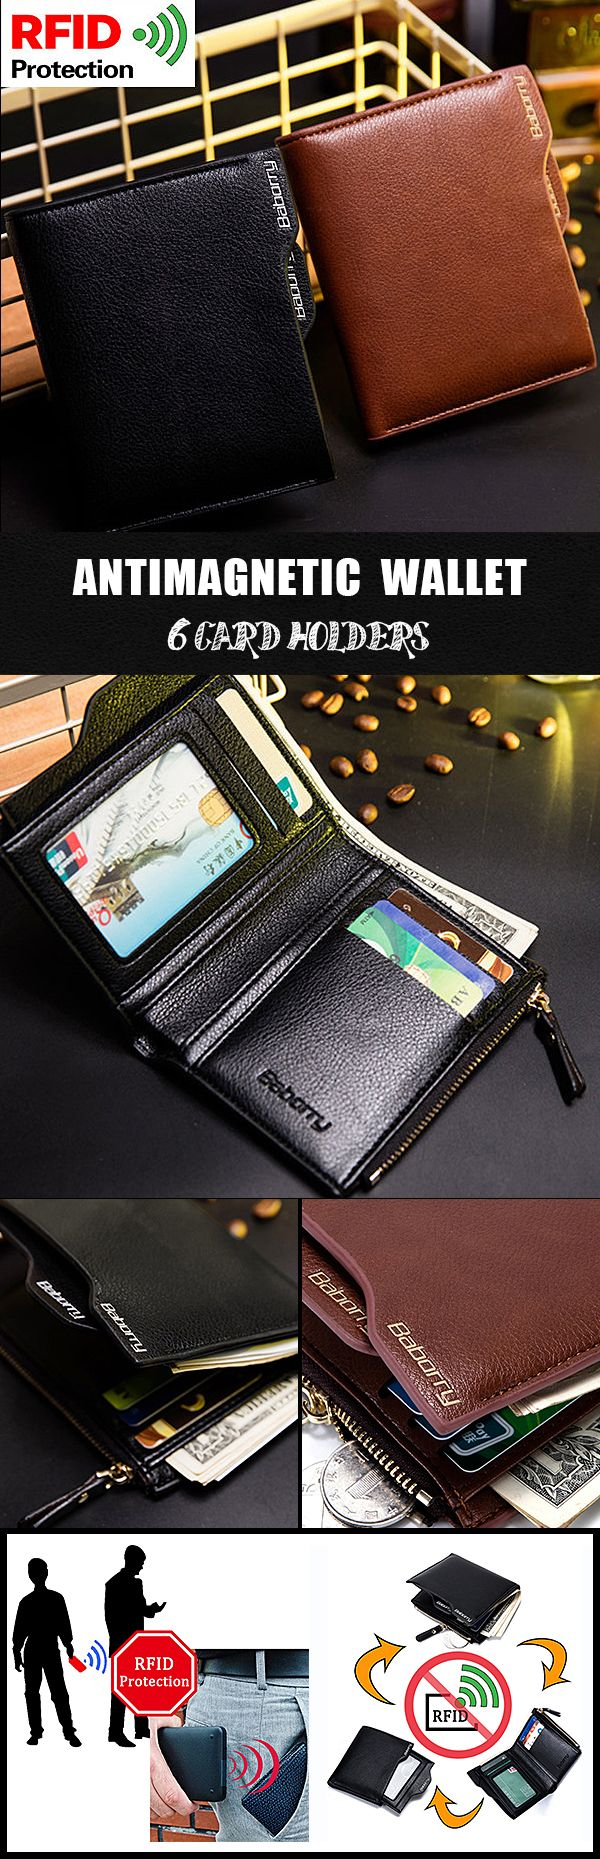 [$ 8.38] [2 / US$14.00]   RFID Antimagnetic 6 Card Holders Wallet Business PU Leather Coin Bag For Men